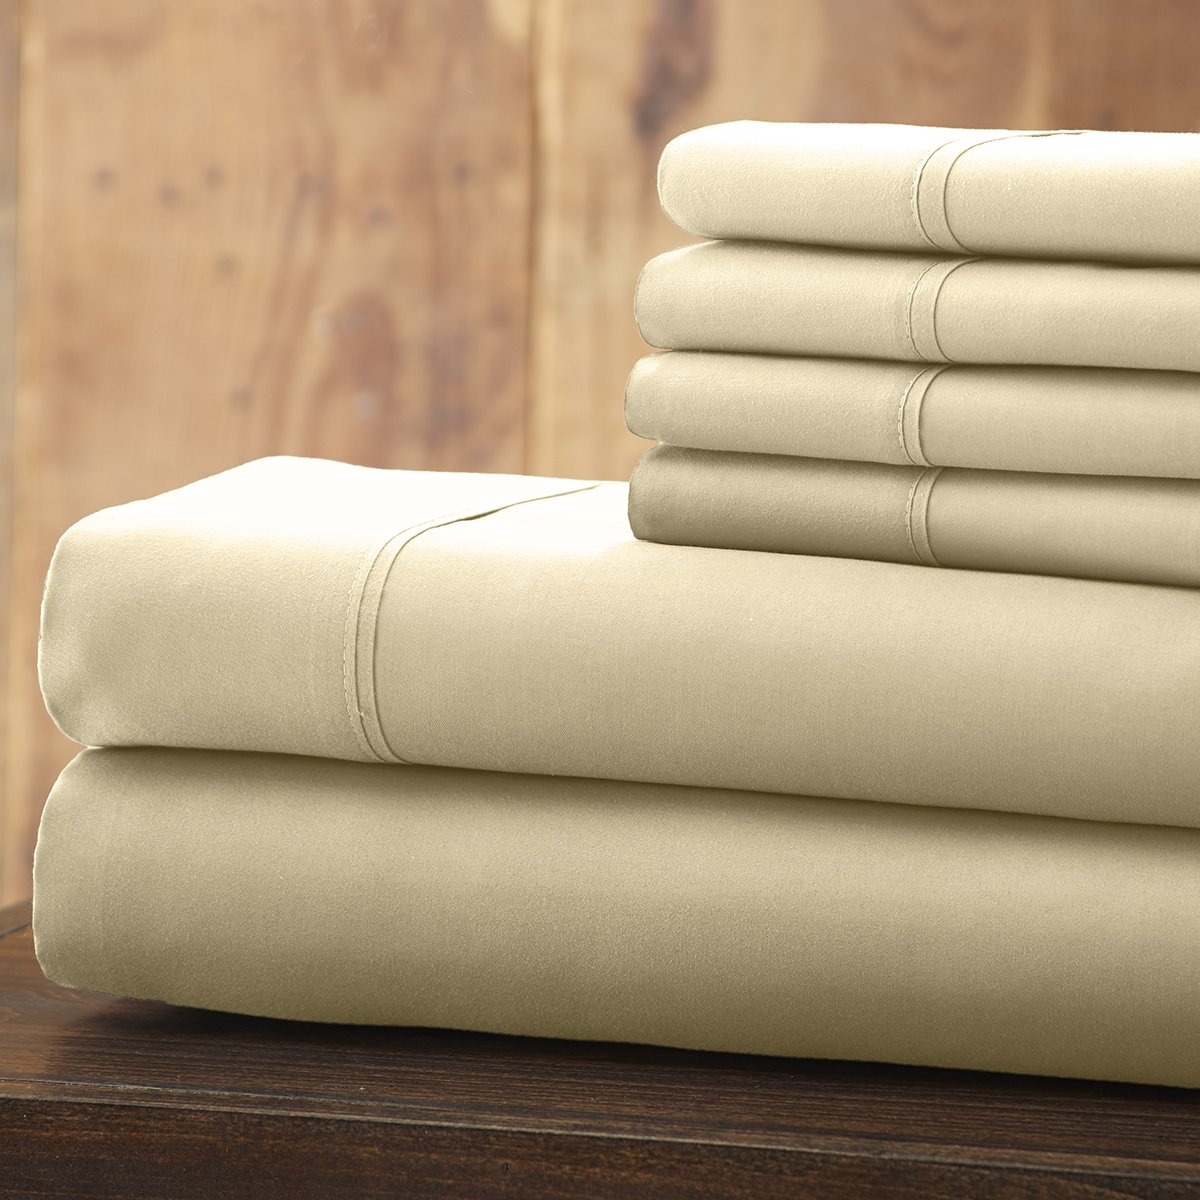 Spirit Linen 6 Piece Everyday Essentials 1800 Series Sheet Set, Queen, Ivory